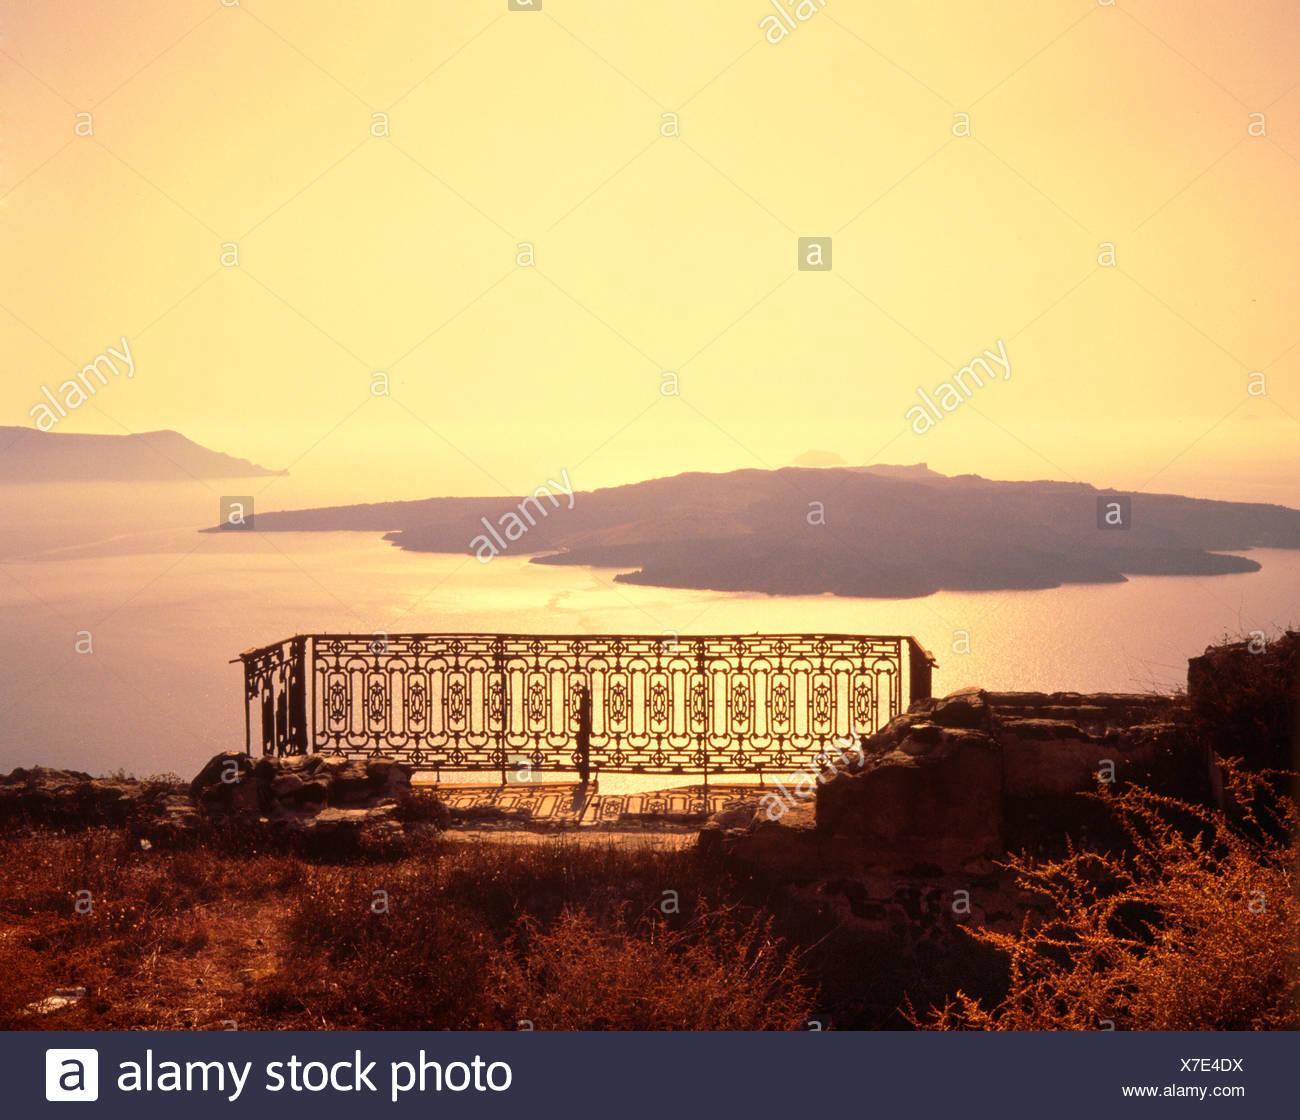 Volcanic island Nea Kameni in the caldera, over the balcony, the remains of a house after the earthquake of 1956, historic phot - Stock Image